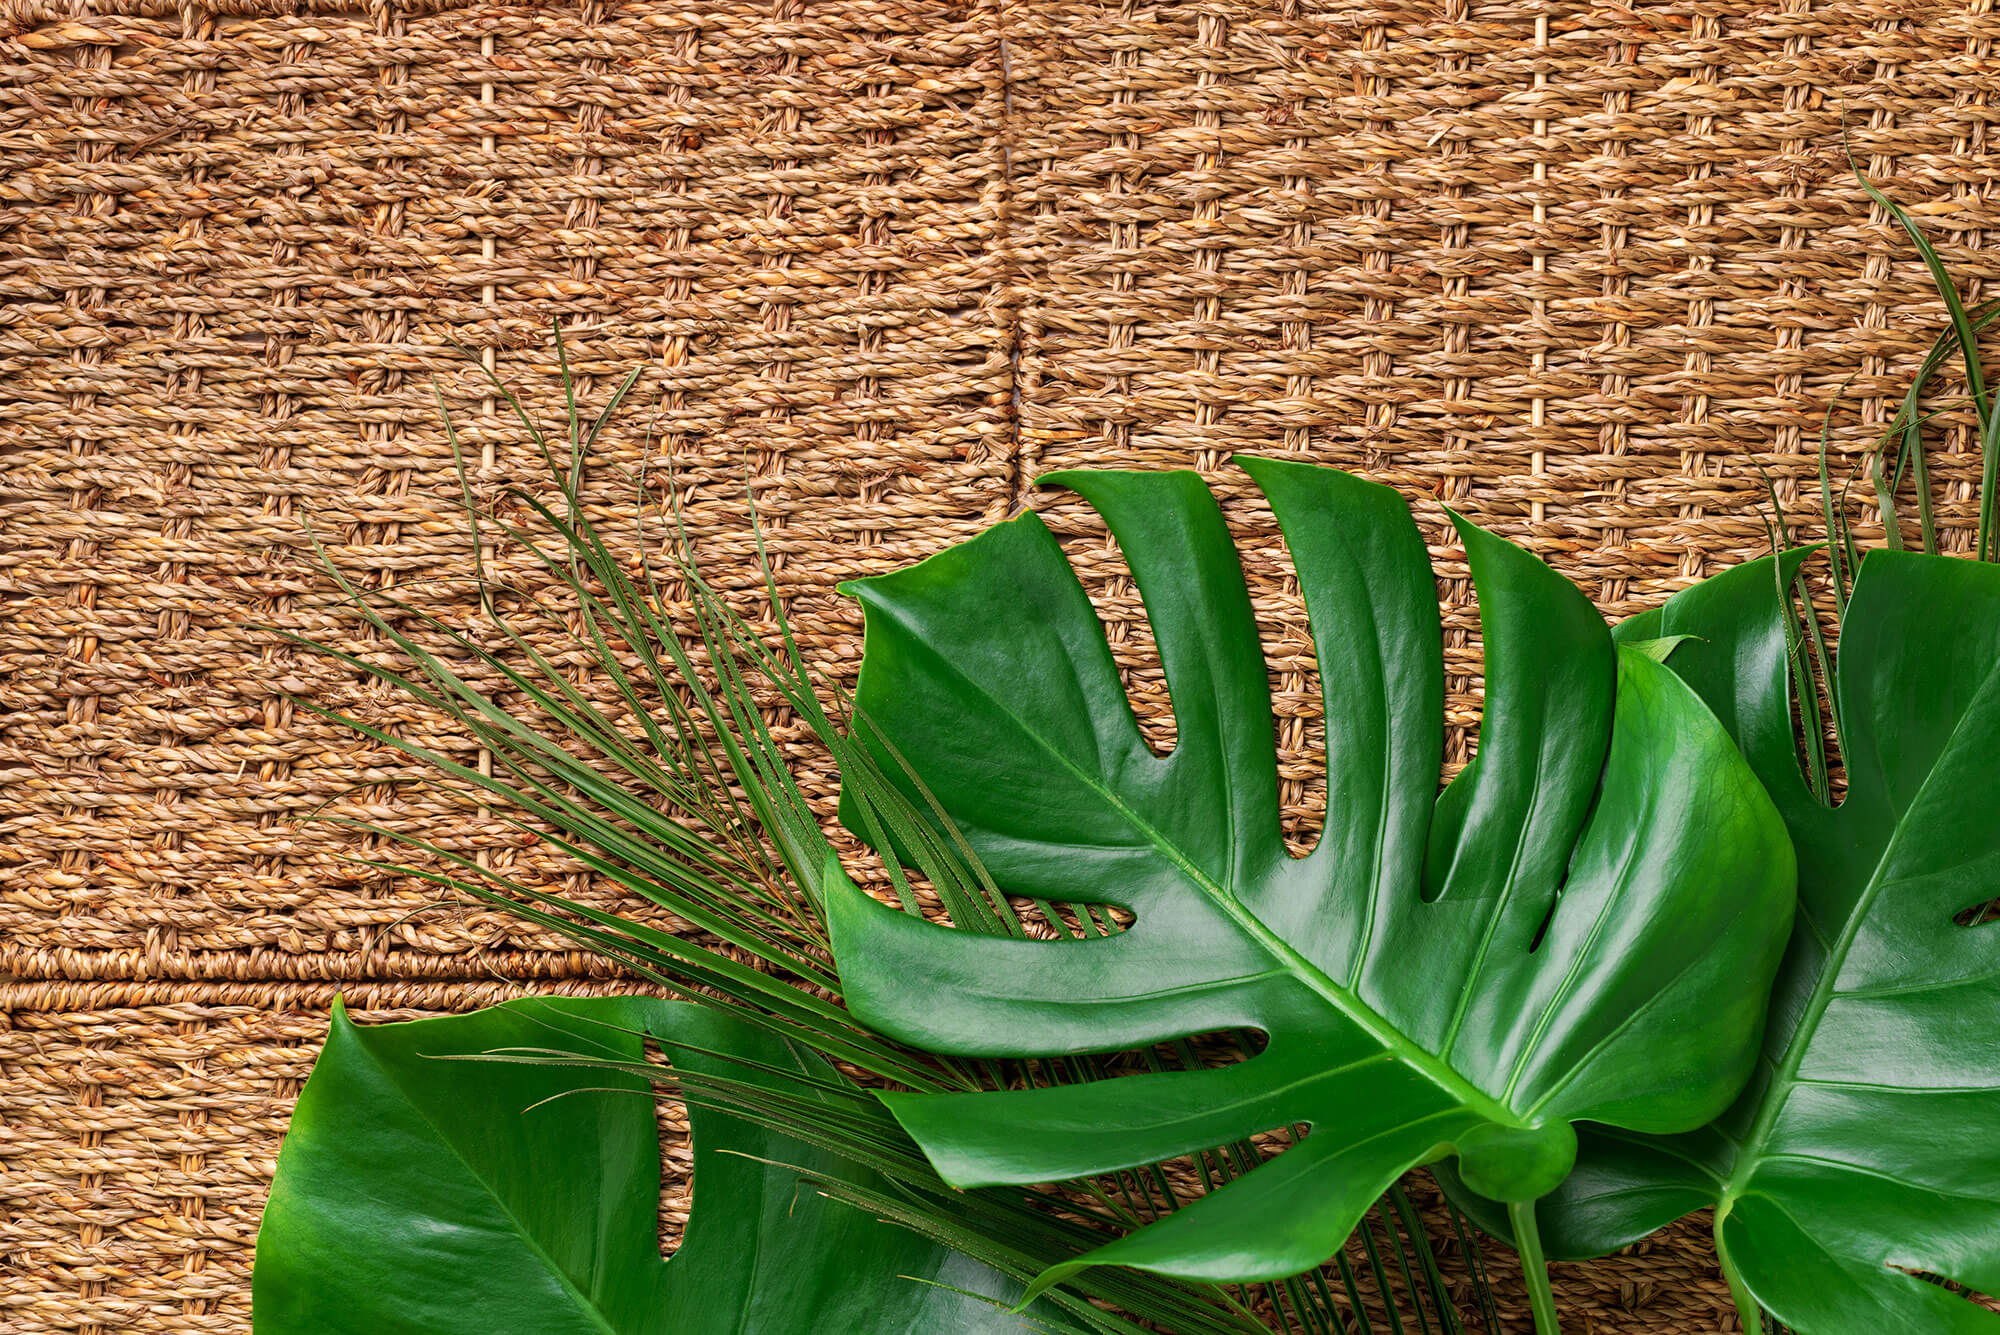 green palm and tropical monstera leaves on rattan GNAUHSY - News-old